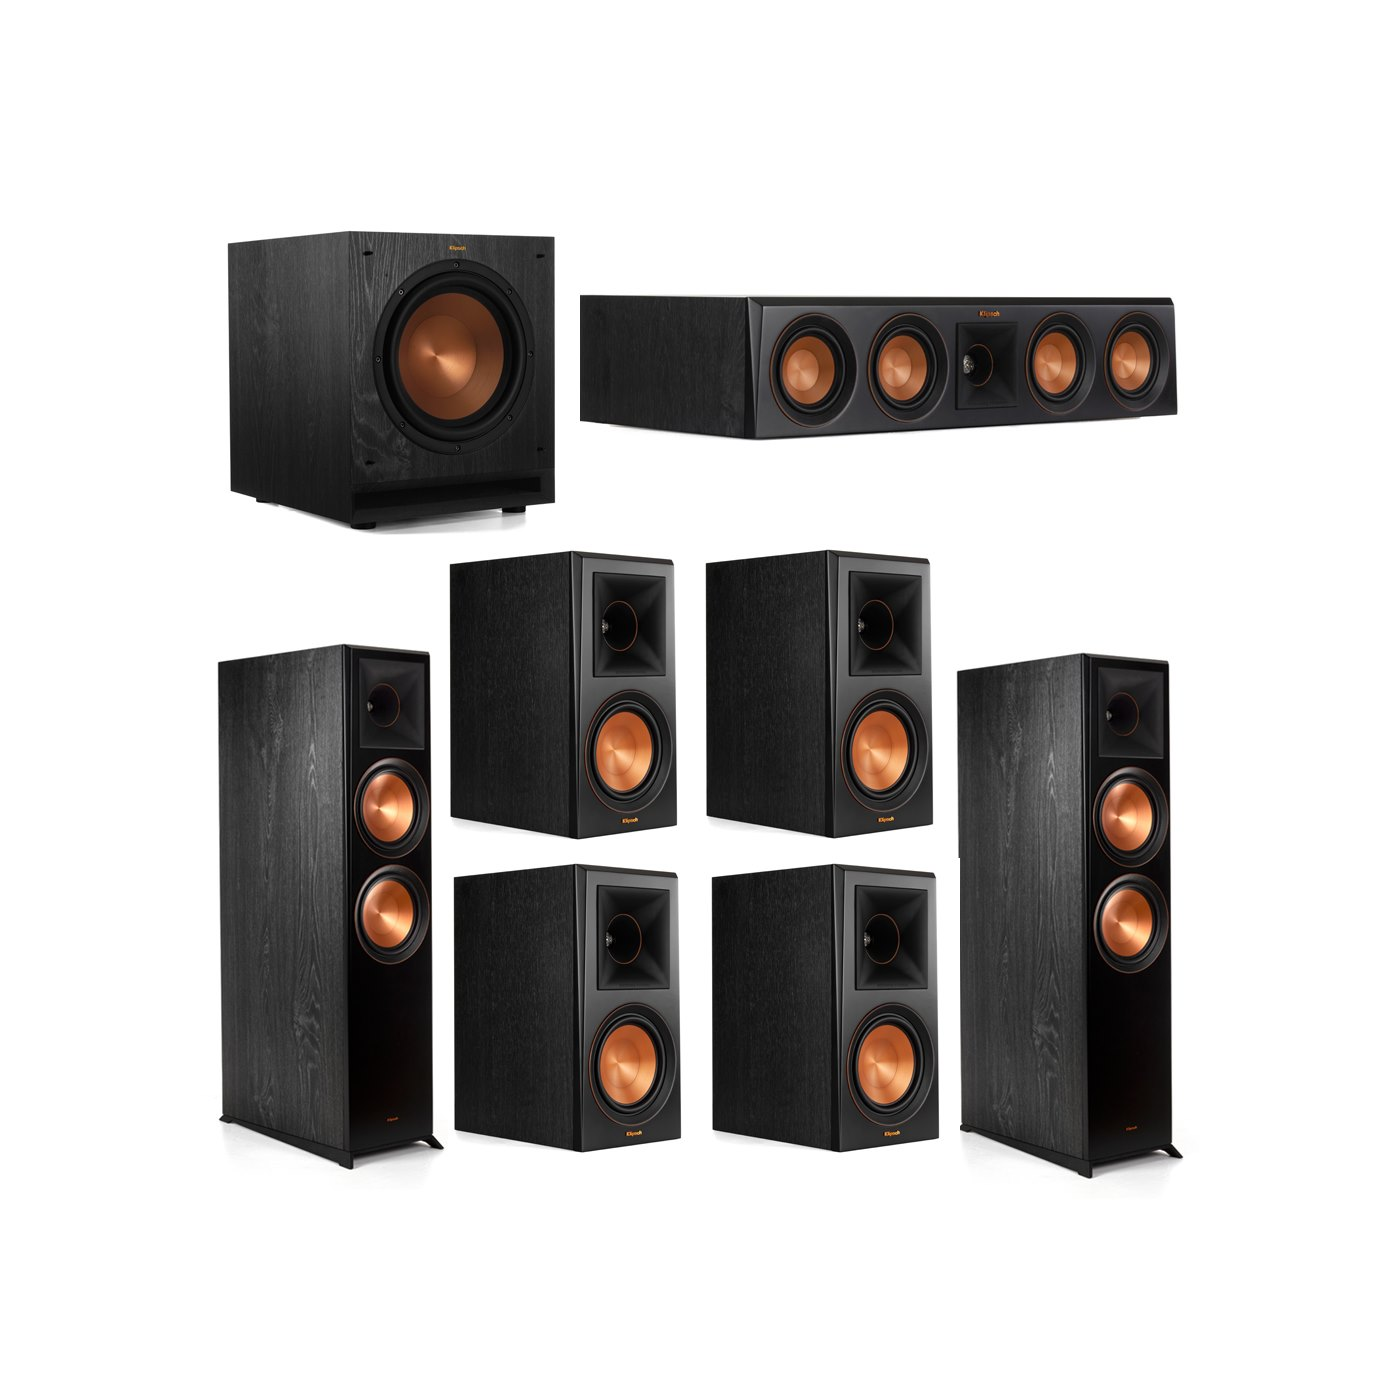 Klipsch 7.1.2 System - 2 RP-8060FA Dolby Atmos Speakers, 1 RP-404C, 4 RP-600M Speakers, 1 SPL-100